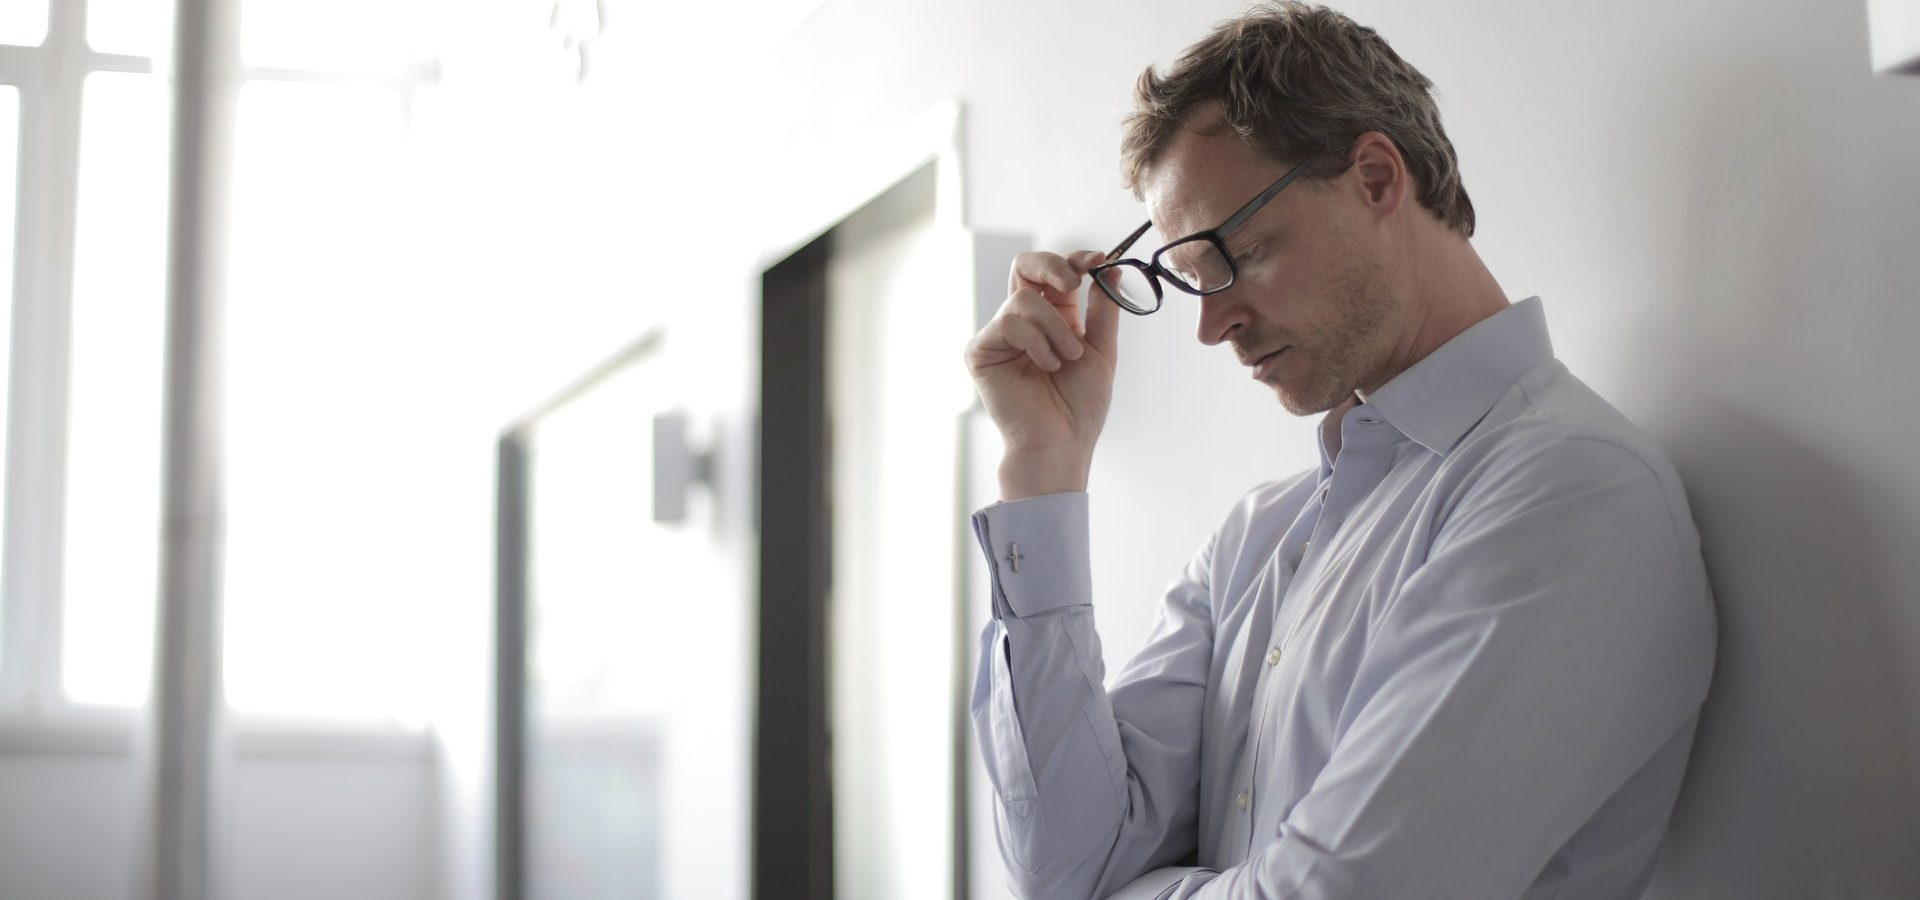 Man looking stressed leading to hearing loss and tinnitus